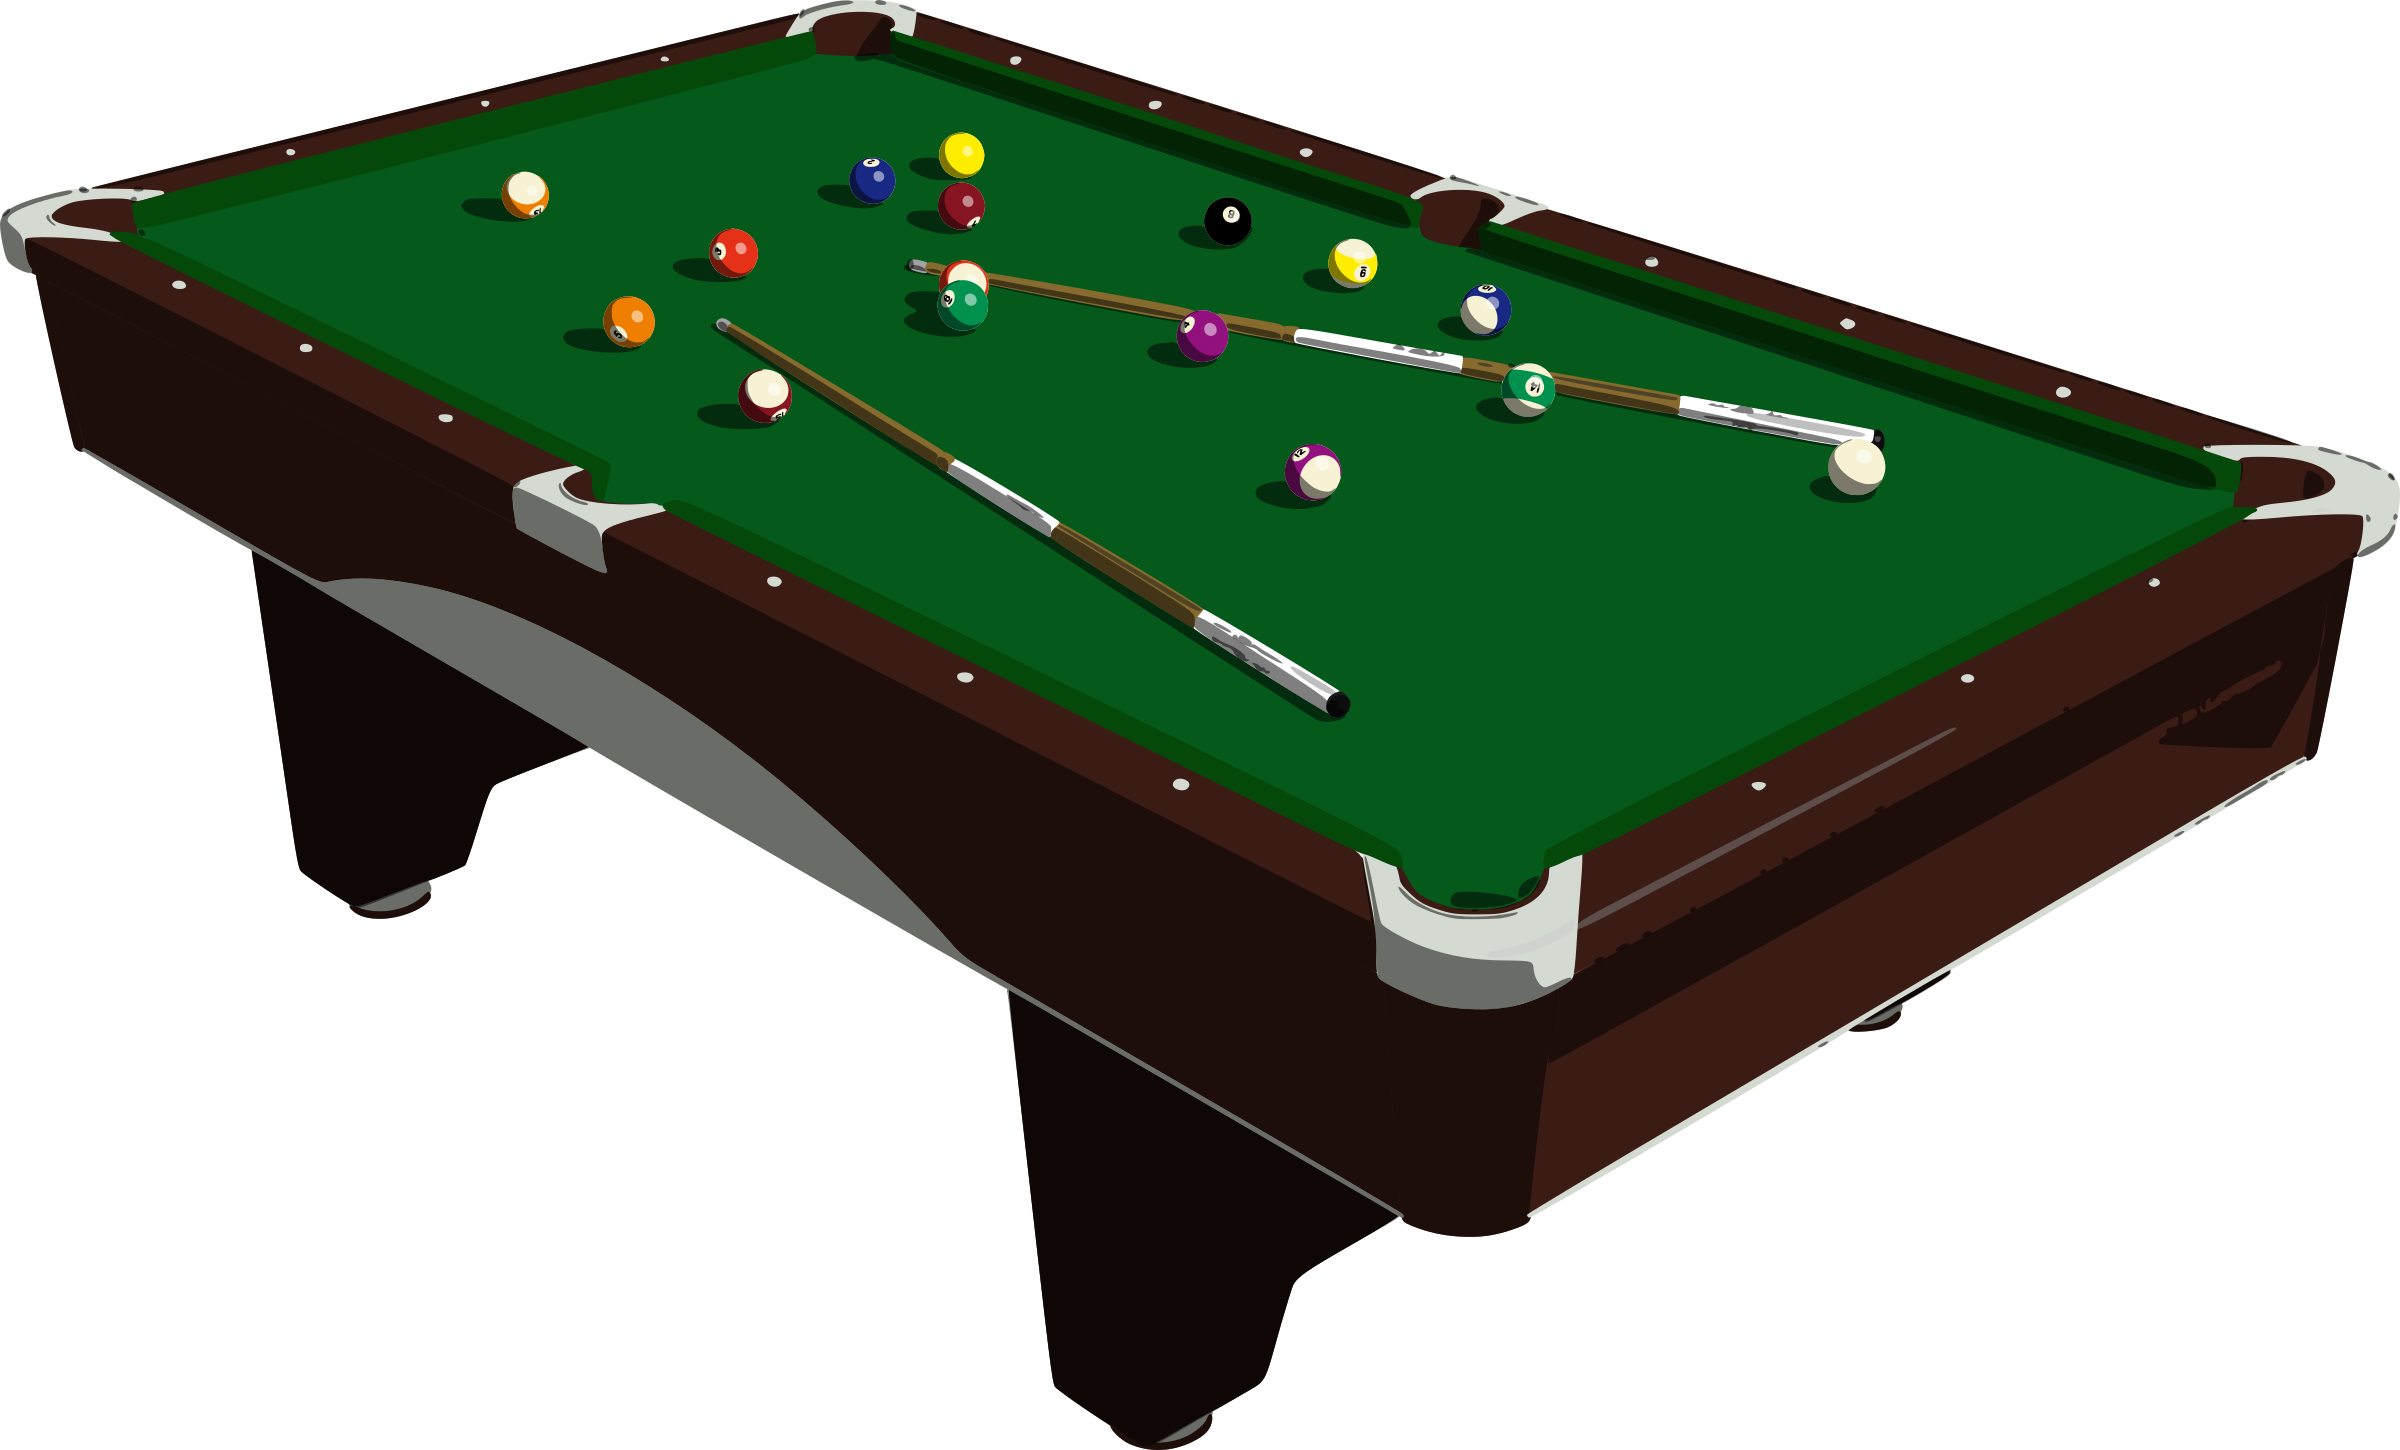 pool game png transparent pool game images pluspng #26678